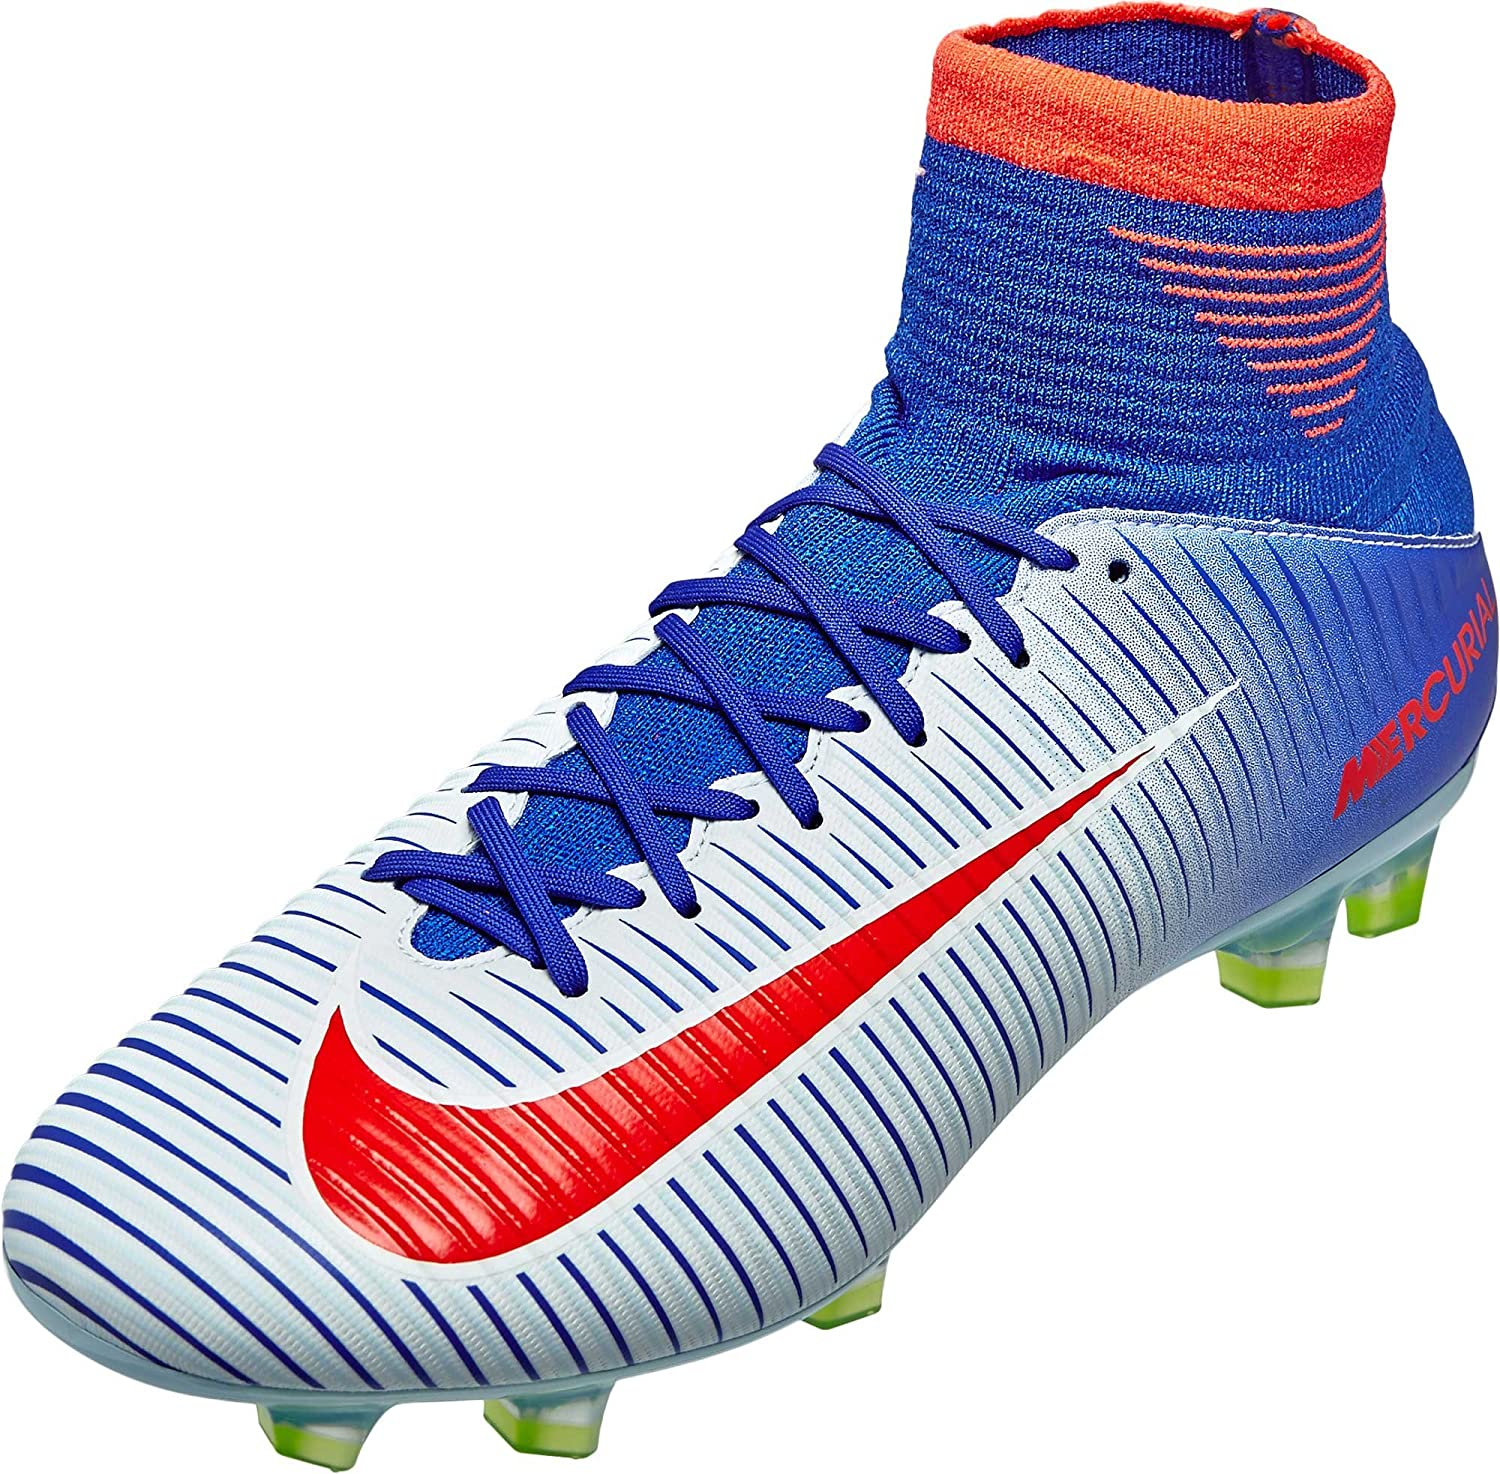 Nike Womens Mercurial Veloce III FG Soccer Cleats - (White/Racer Blue) Size: 10